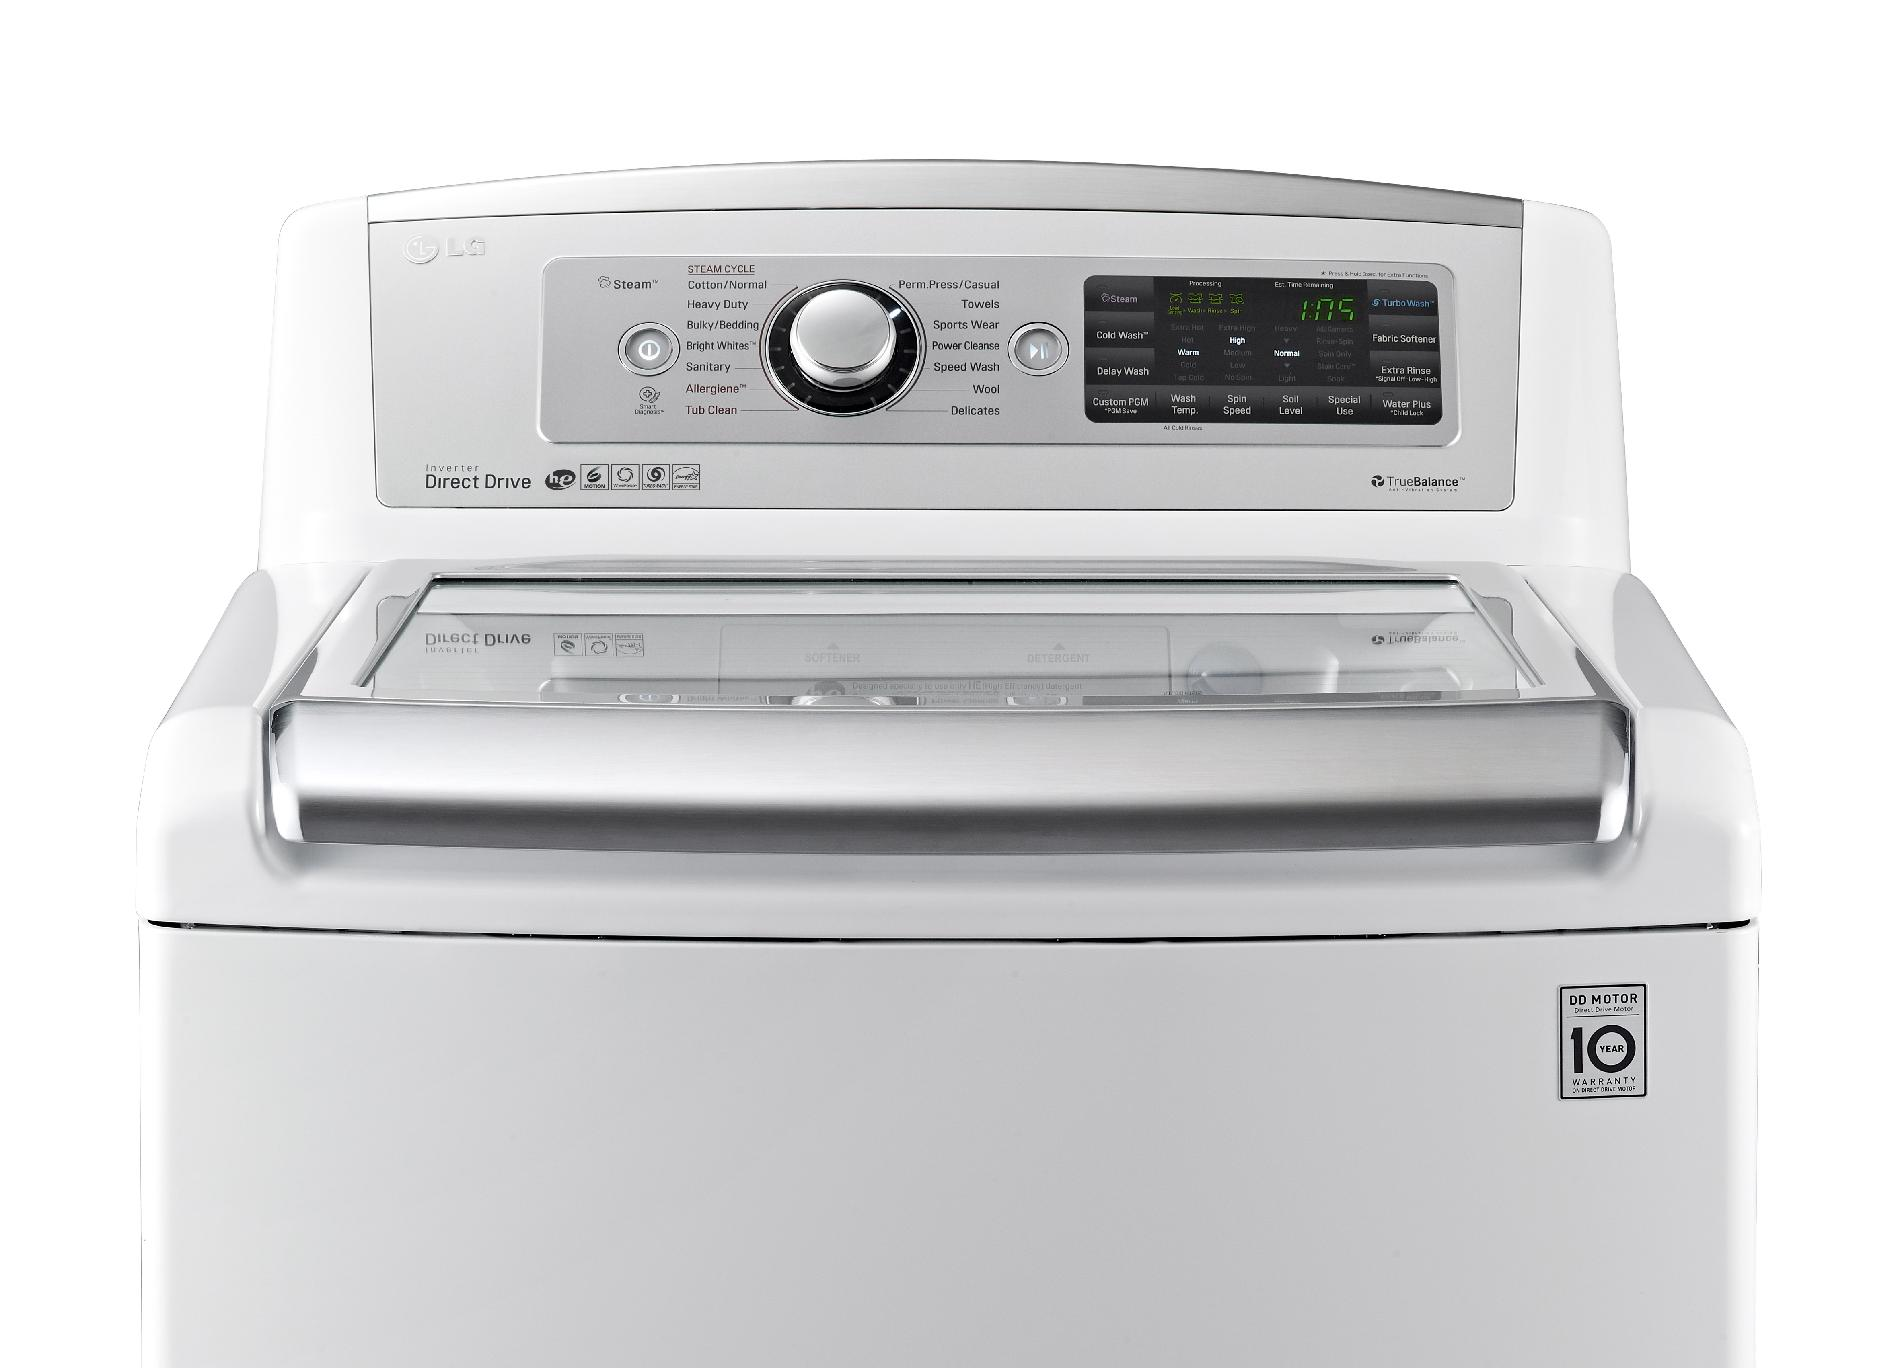 LG WT5680HWA 5.0 cu. ft. High Efficiency Top-Load Washer w/ TurboWash™ - White